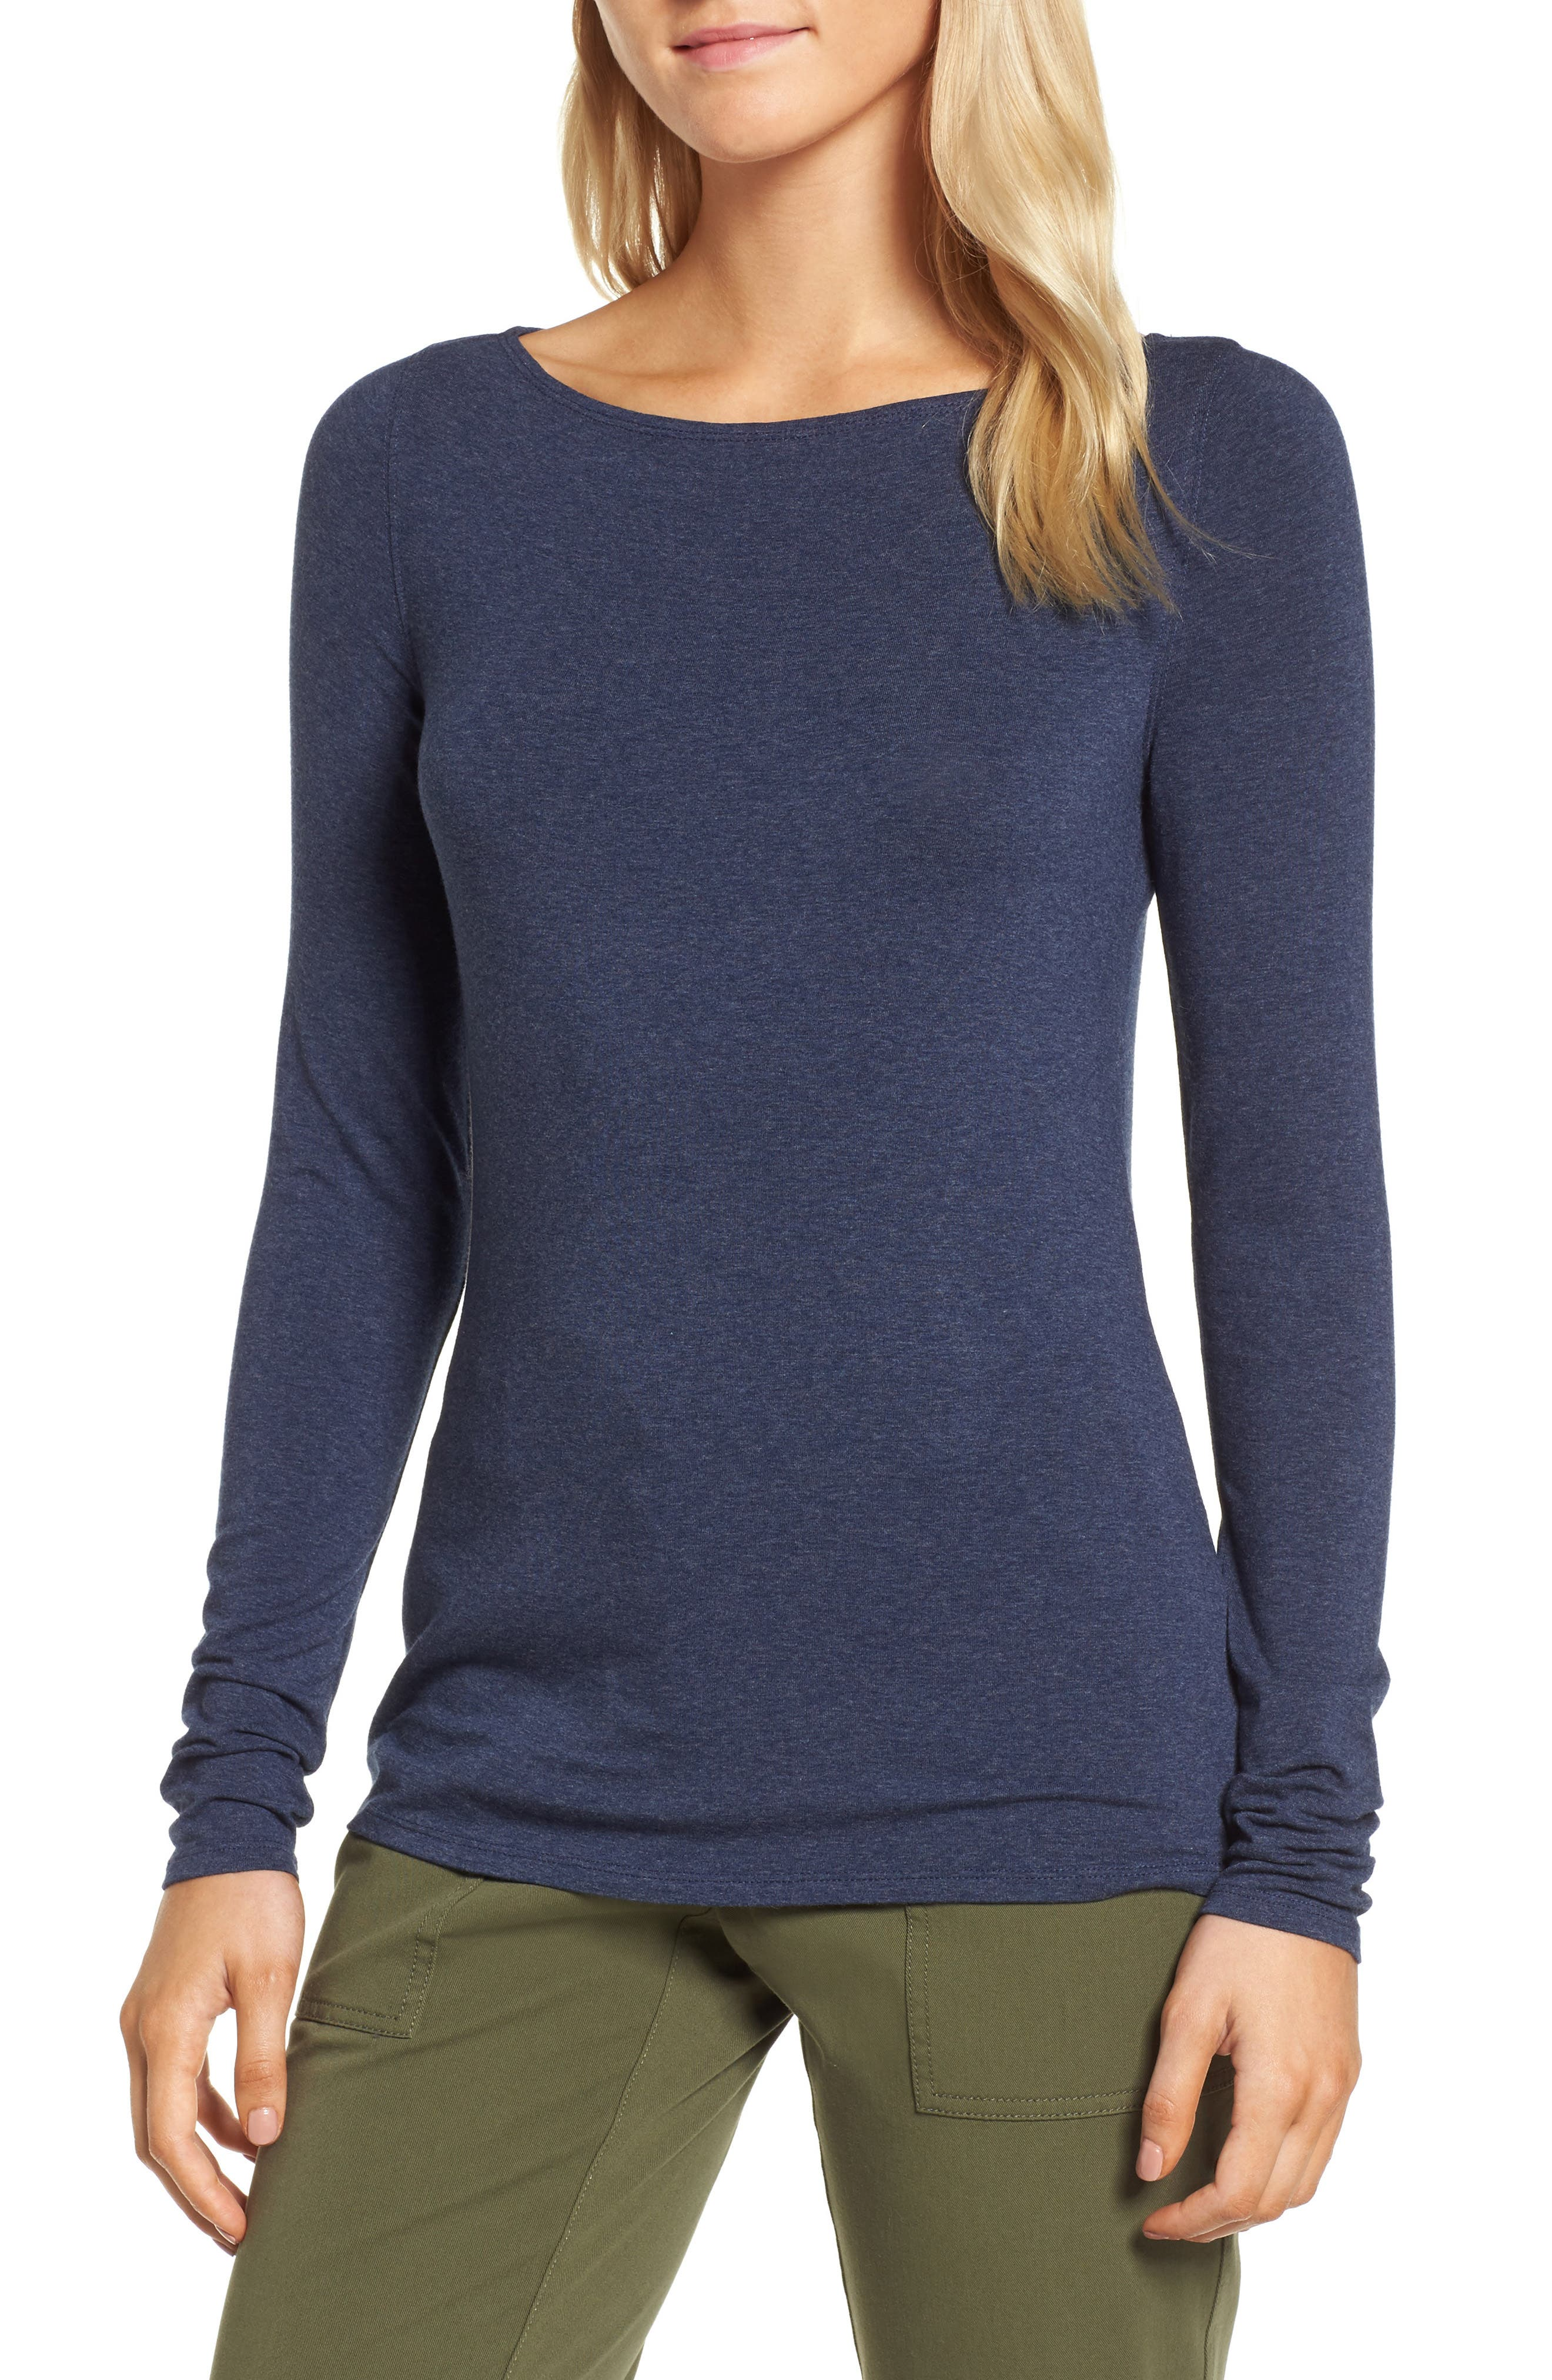 Alternate Image 1 Selected - Nordstrom Signature Long Sleeve Bateau Neck Tee